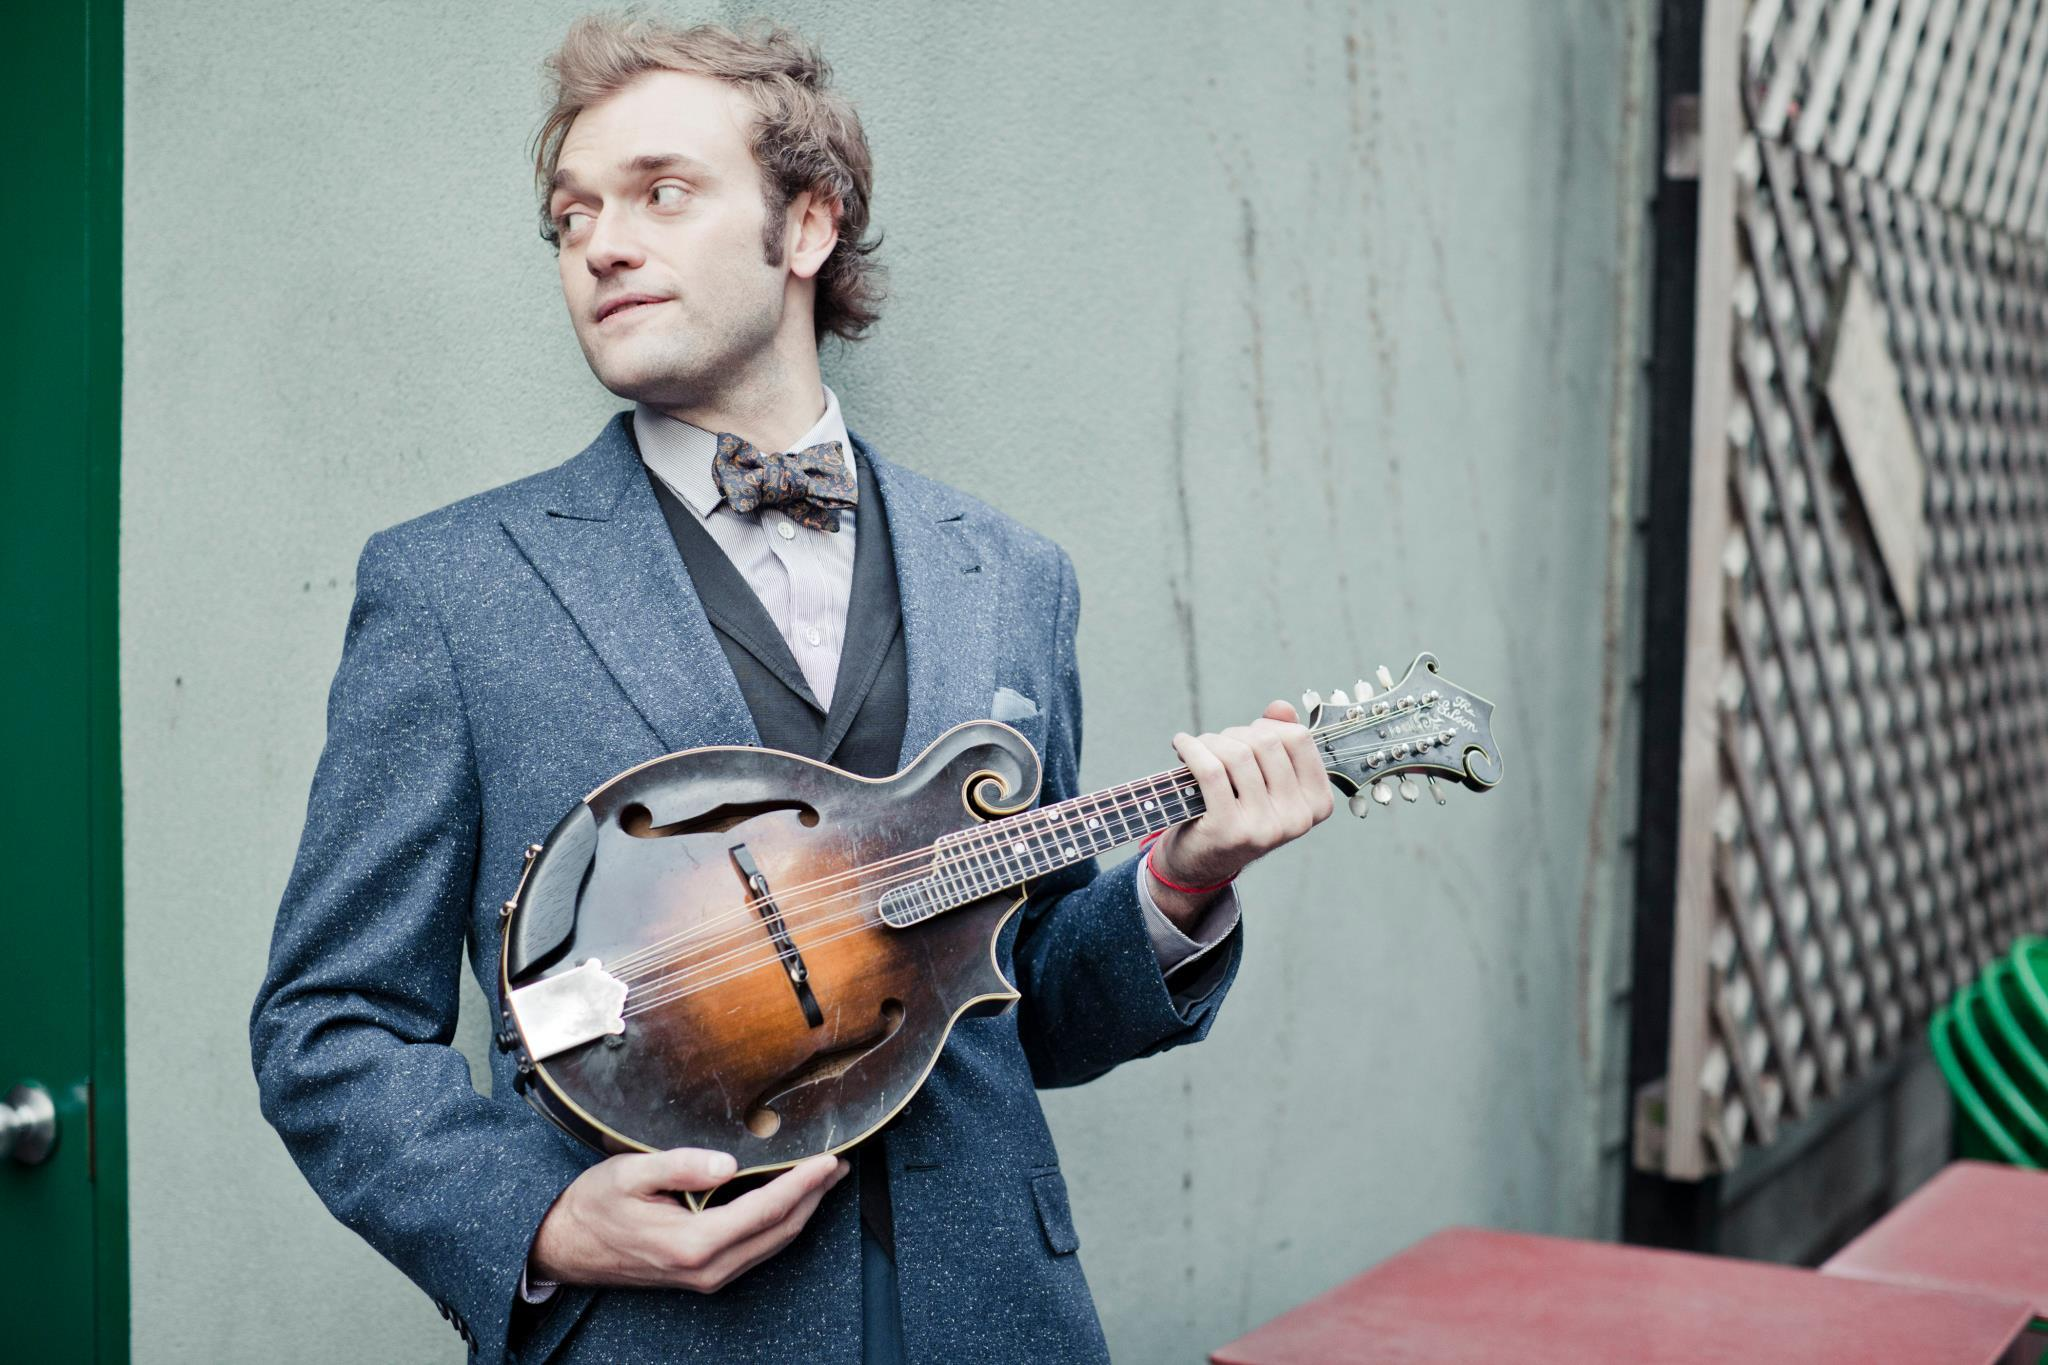 Chris Thile (Photo by Brantley Gutierrez / Facebook)